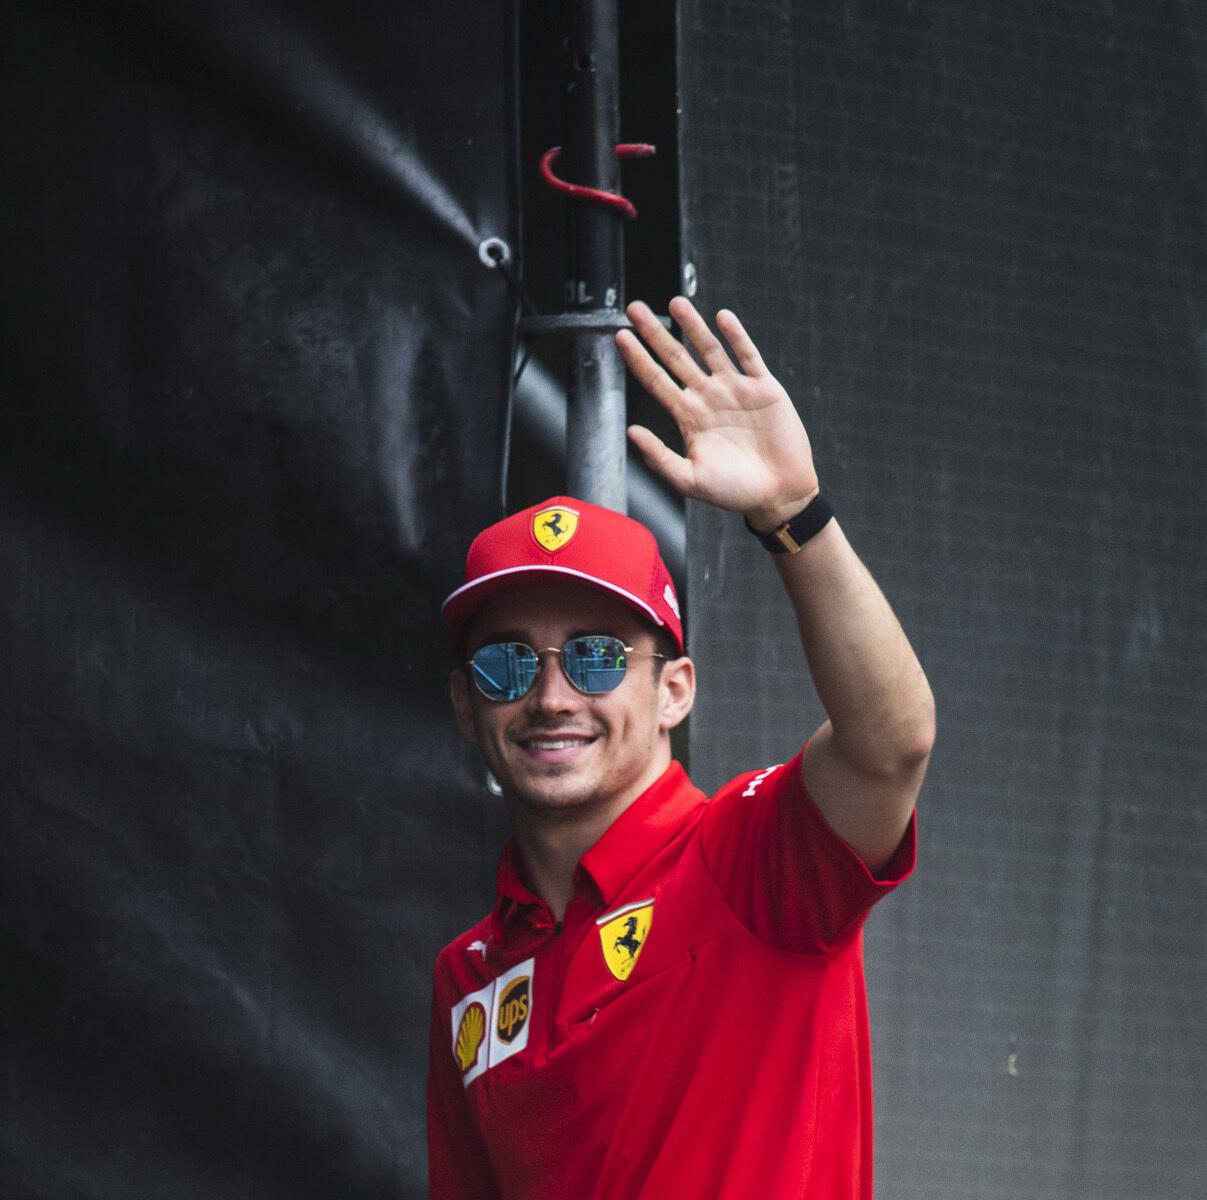 34: Will Leclerc Be Rosberg's Next Target?